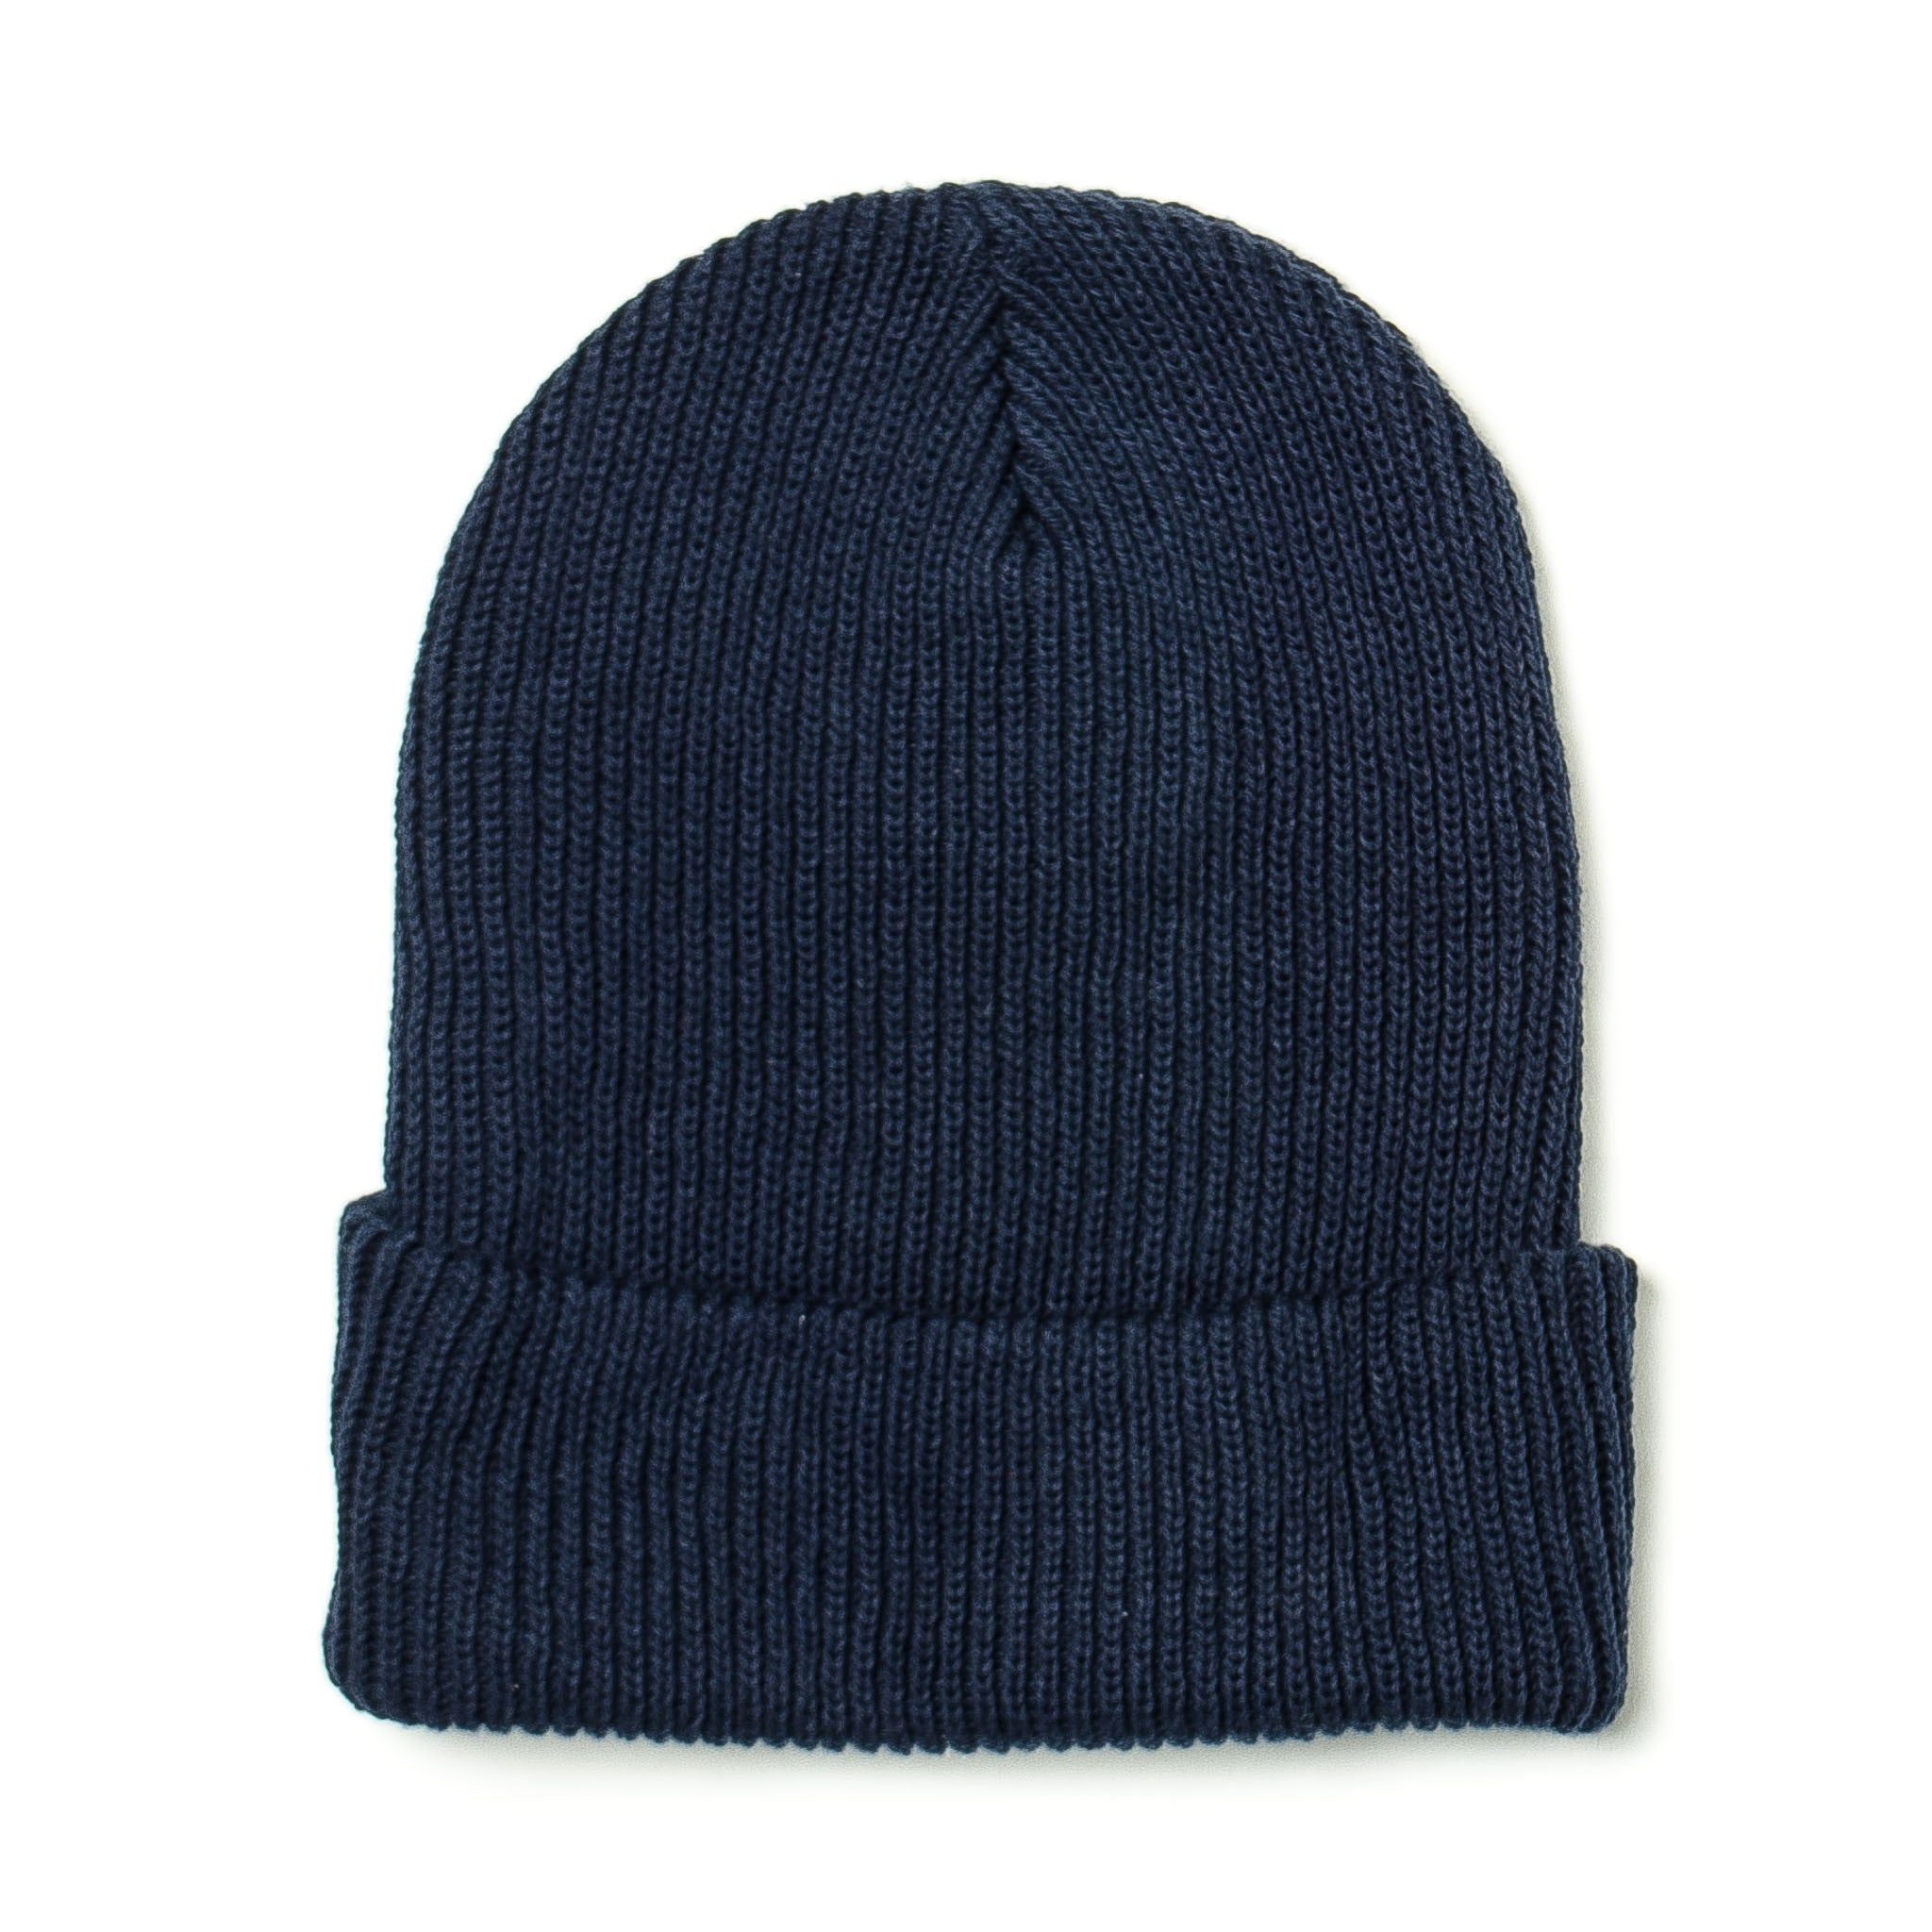 Capsule Toronto Beanie AS Navy/White